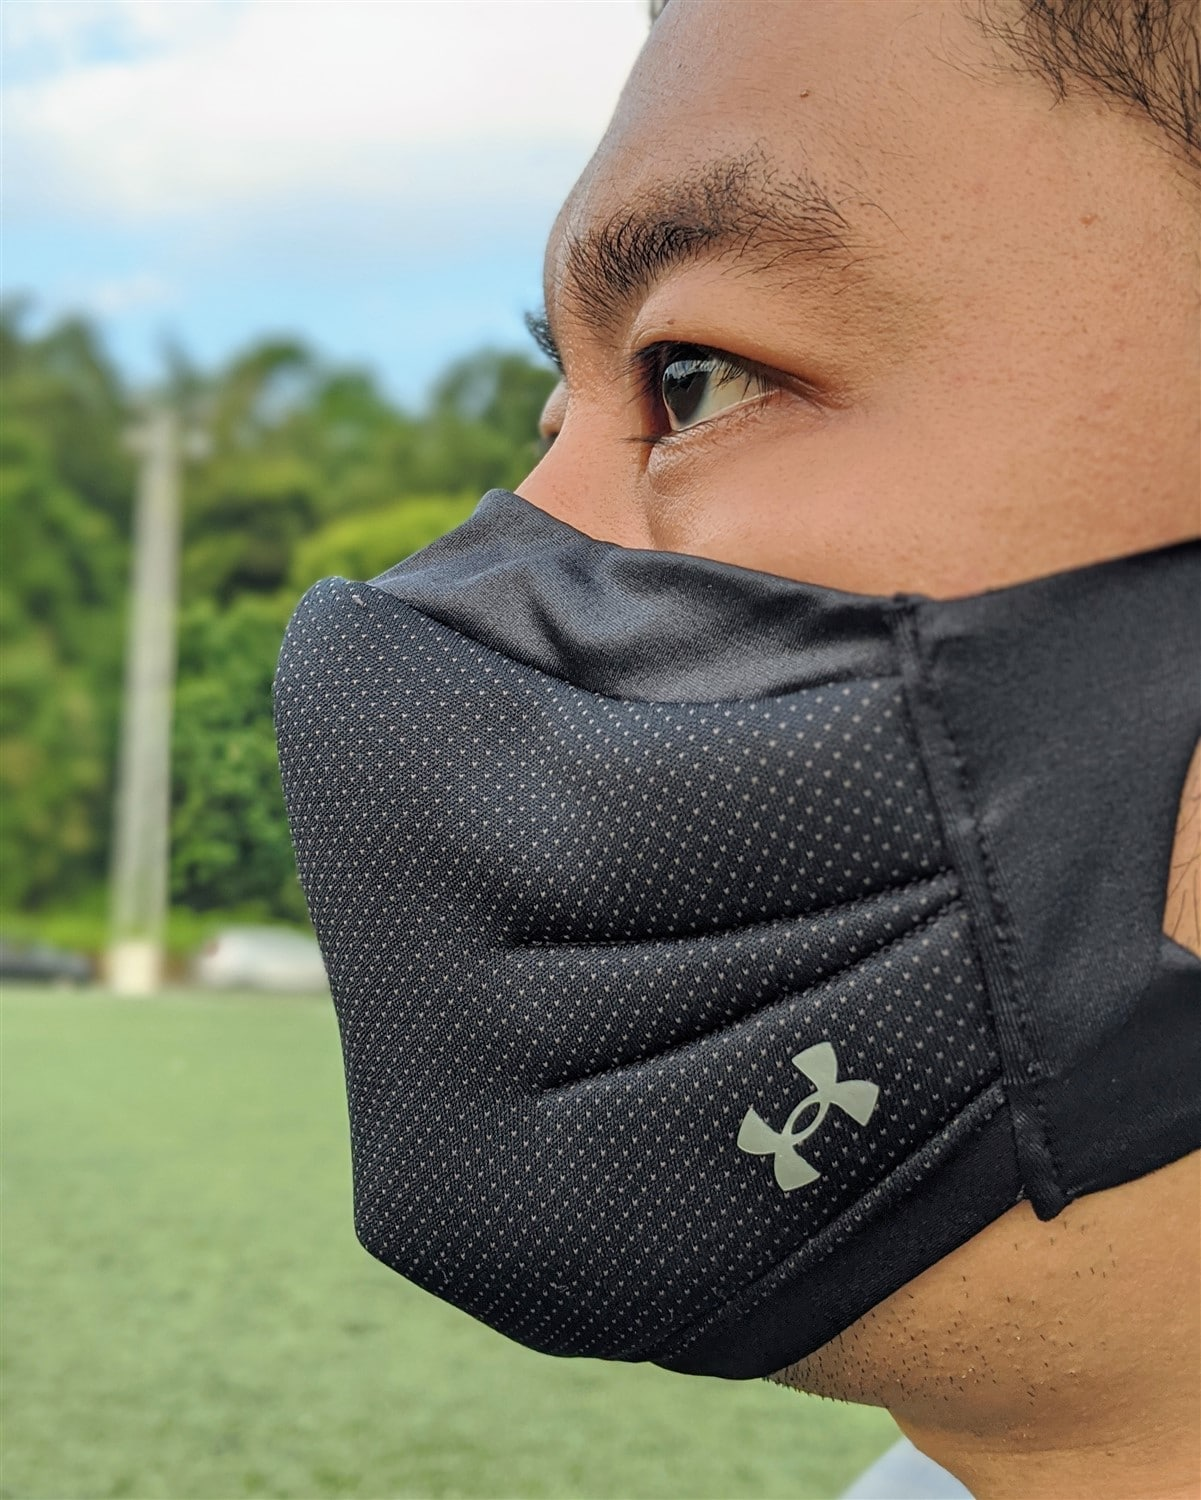 Under Armour Sportsmask review